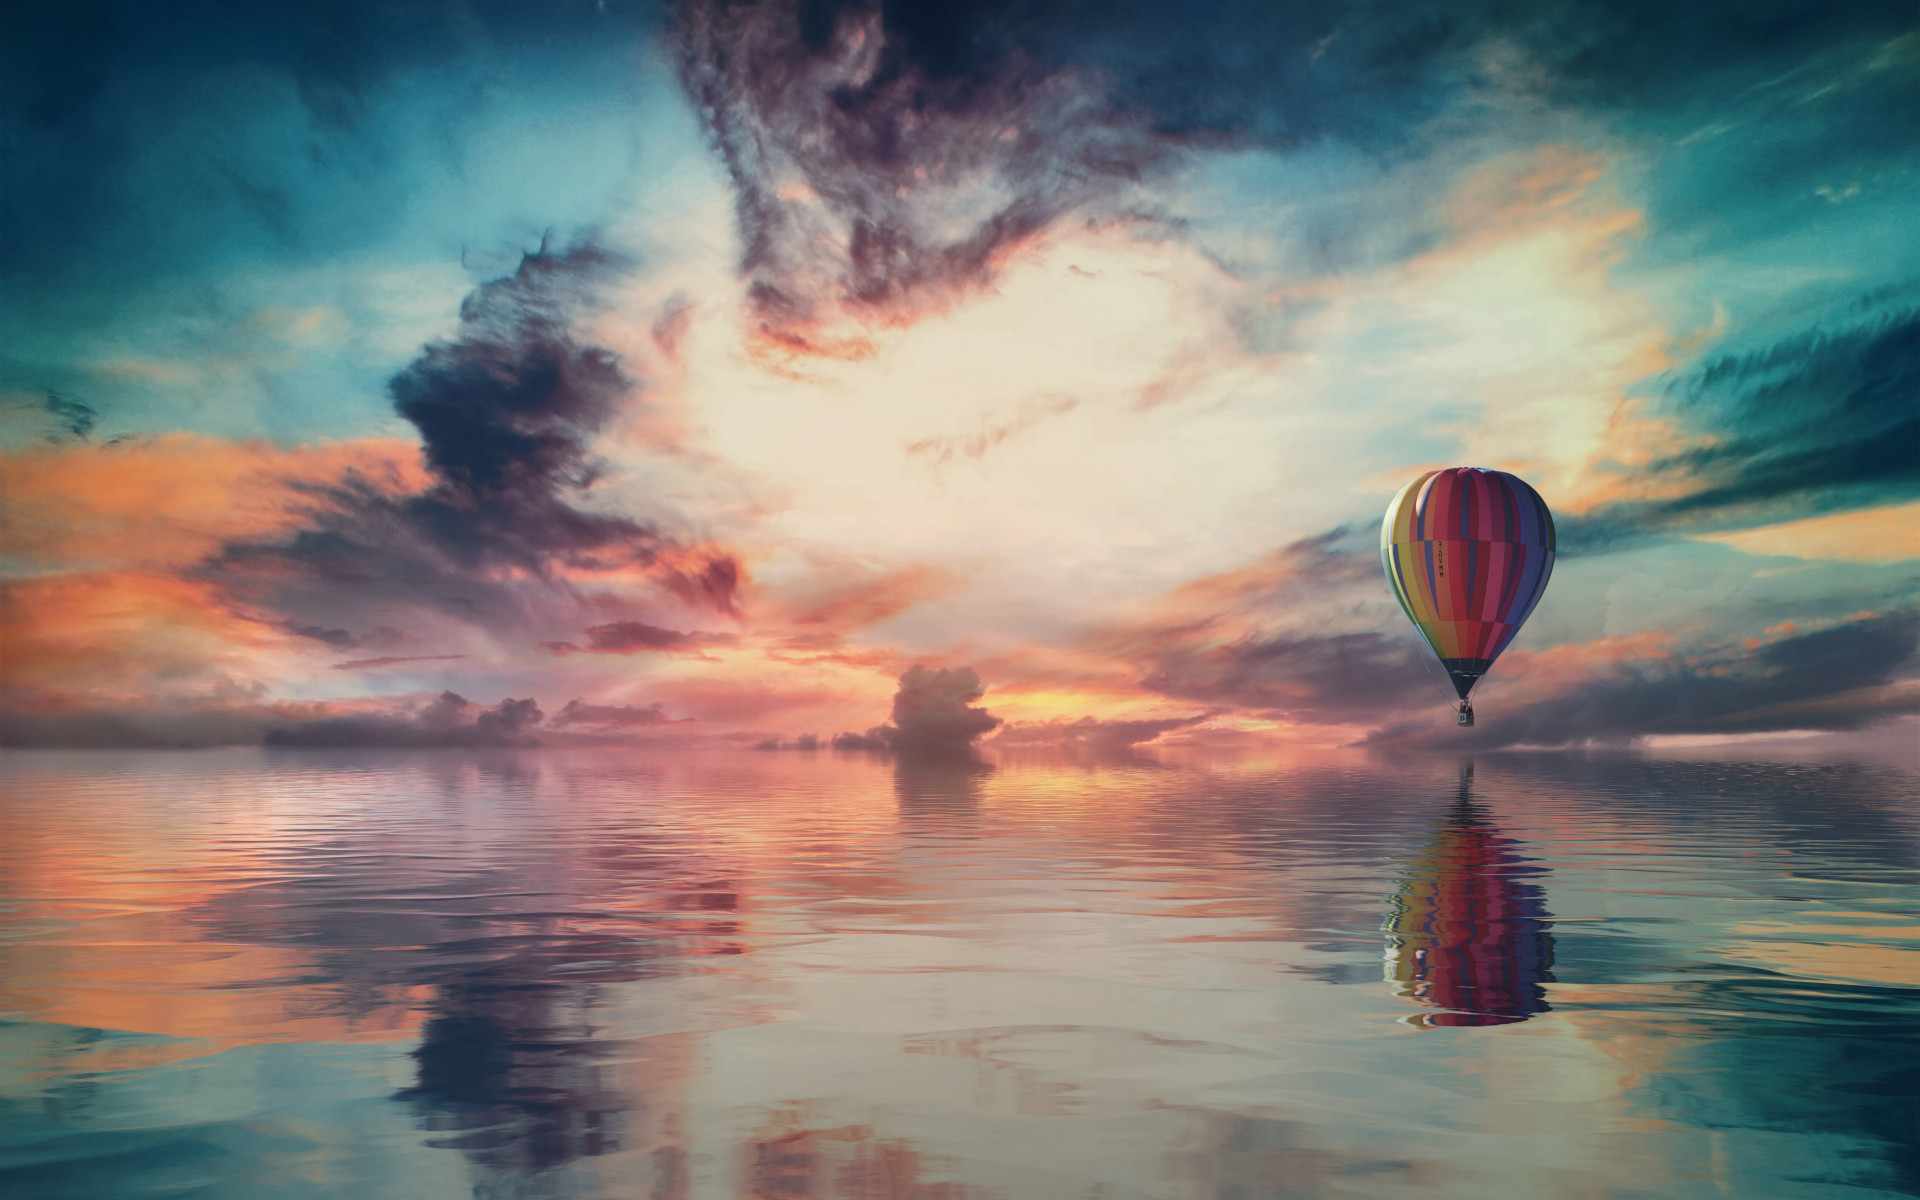 Fantasy travel with the hot air balloon wallpaper 1920x1200